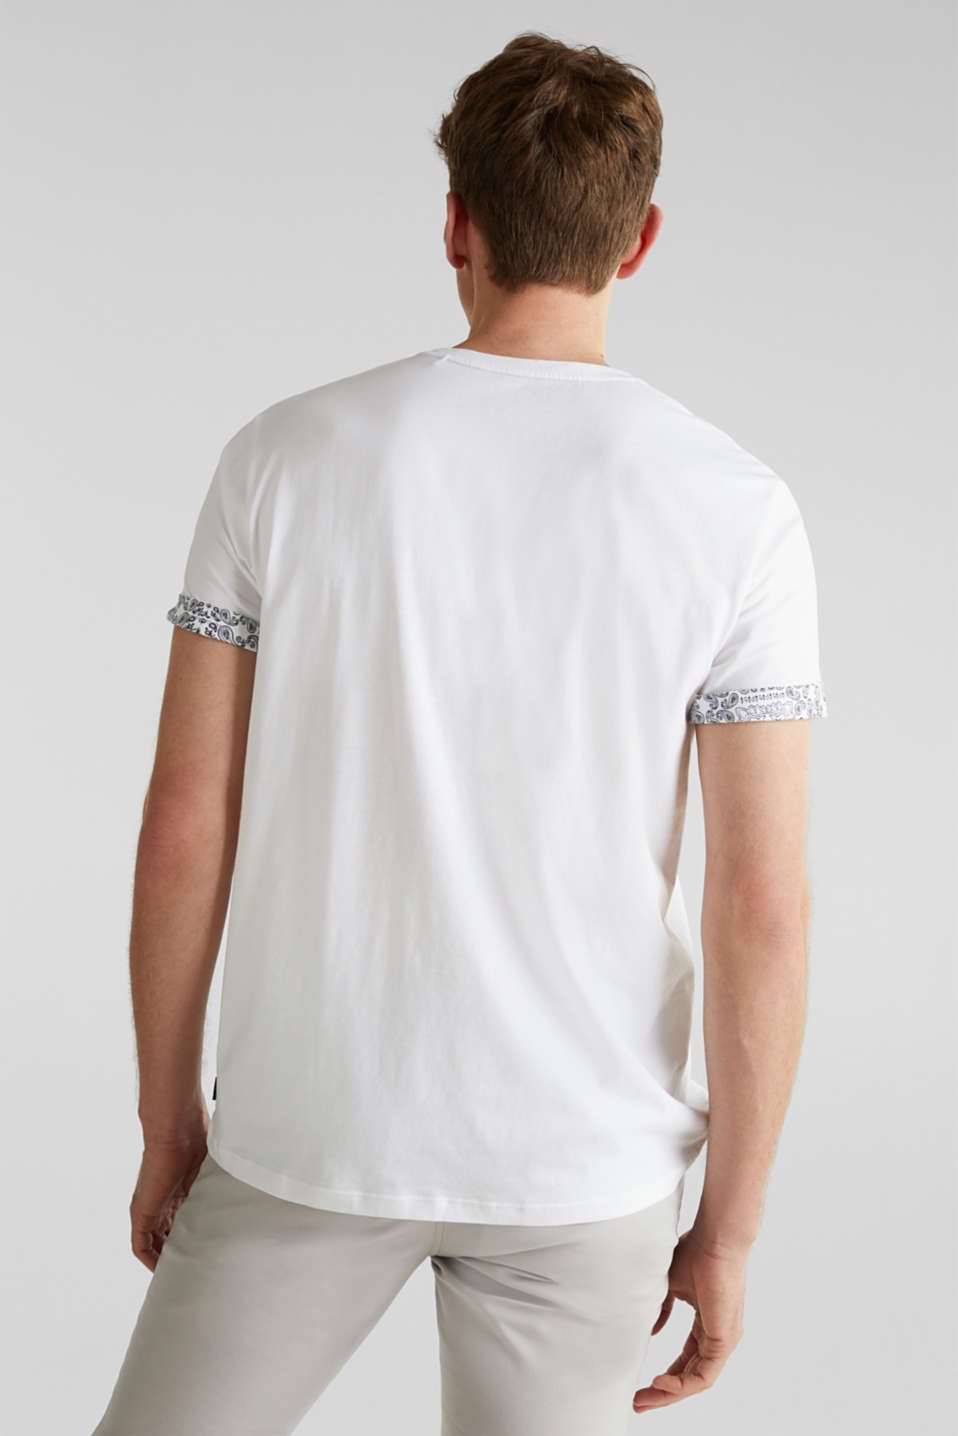 Jersey T-shirt with a bandana print, 100% cotton, WHITE, detail image number 3